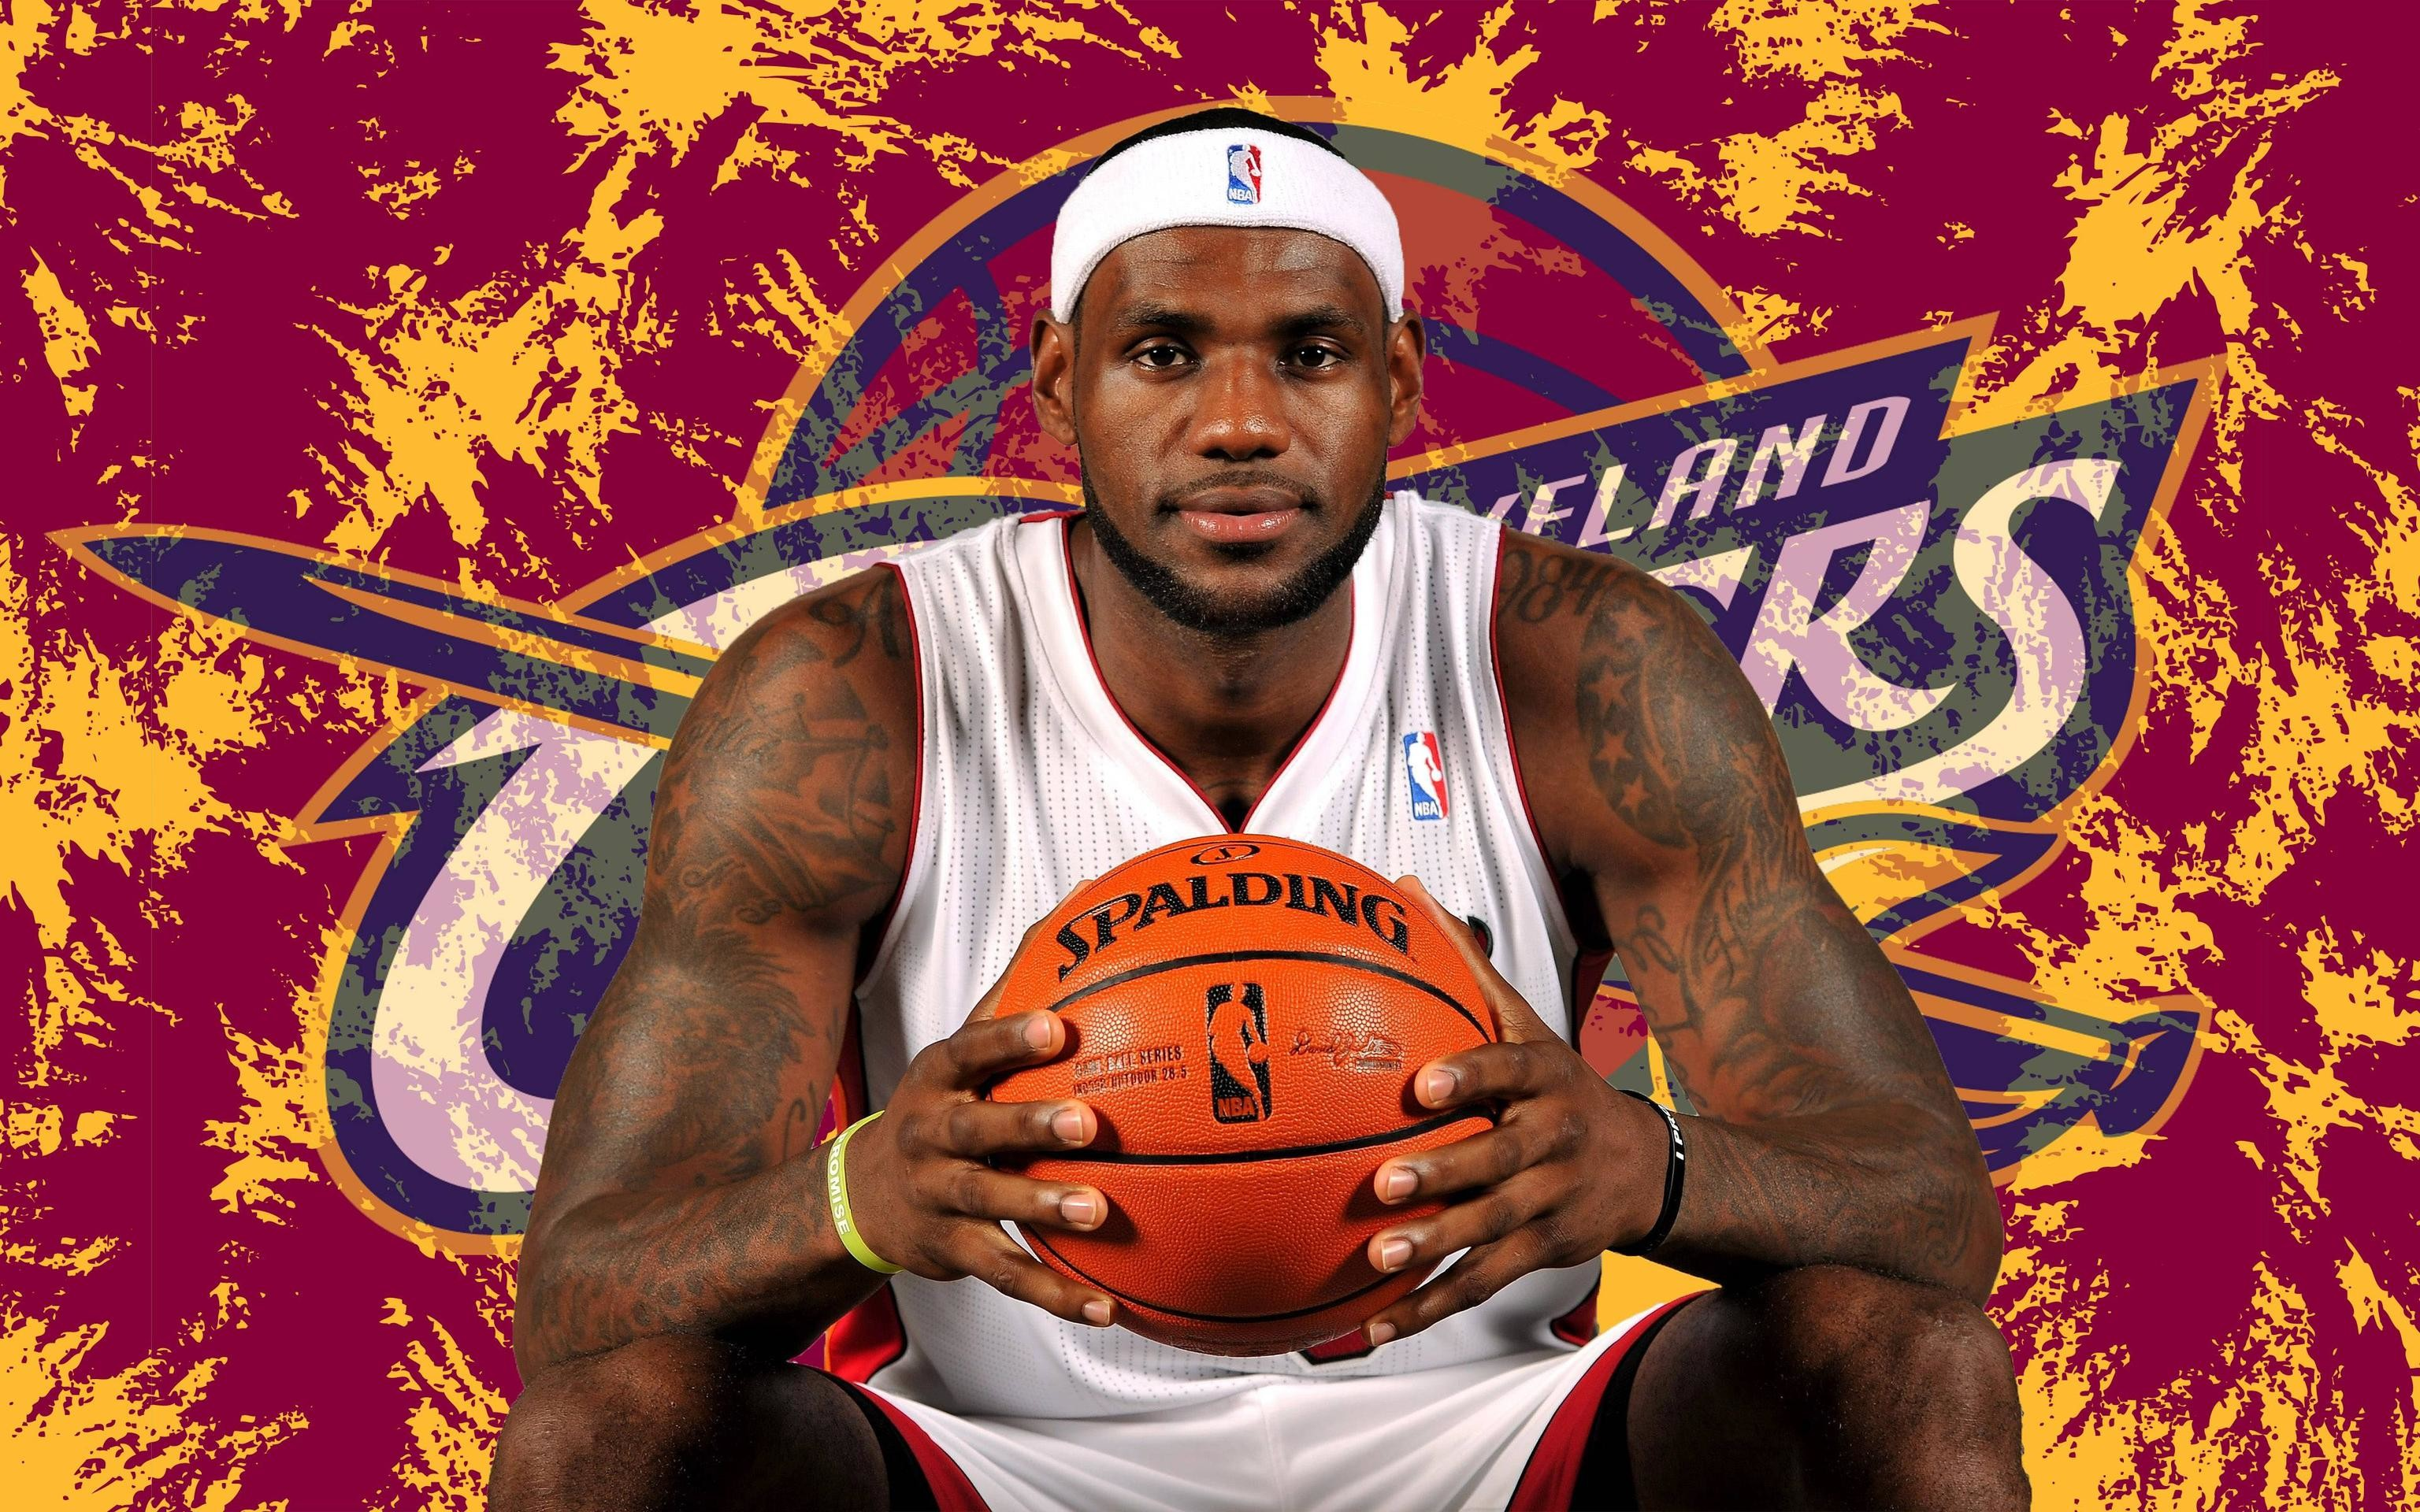 Lebron James Cleveland Wallpapers 2016 | Wallpapers, Backgrounds .